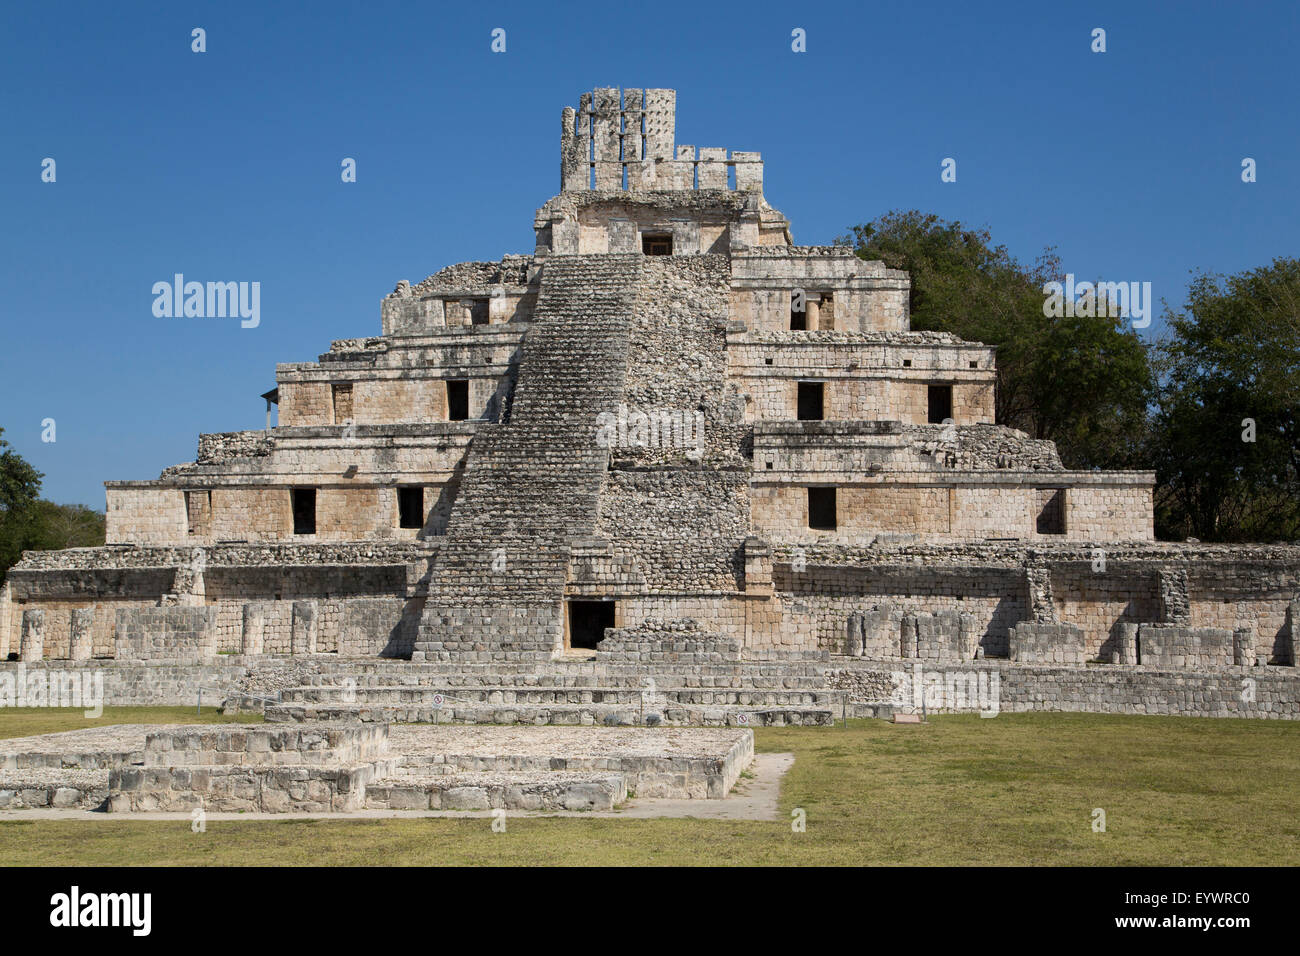 Structure of Five Floors (Pisos), Edzna, Mayan archaeological site, Campeche, Mexico, North America - Stock Image